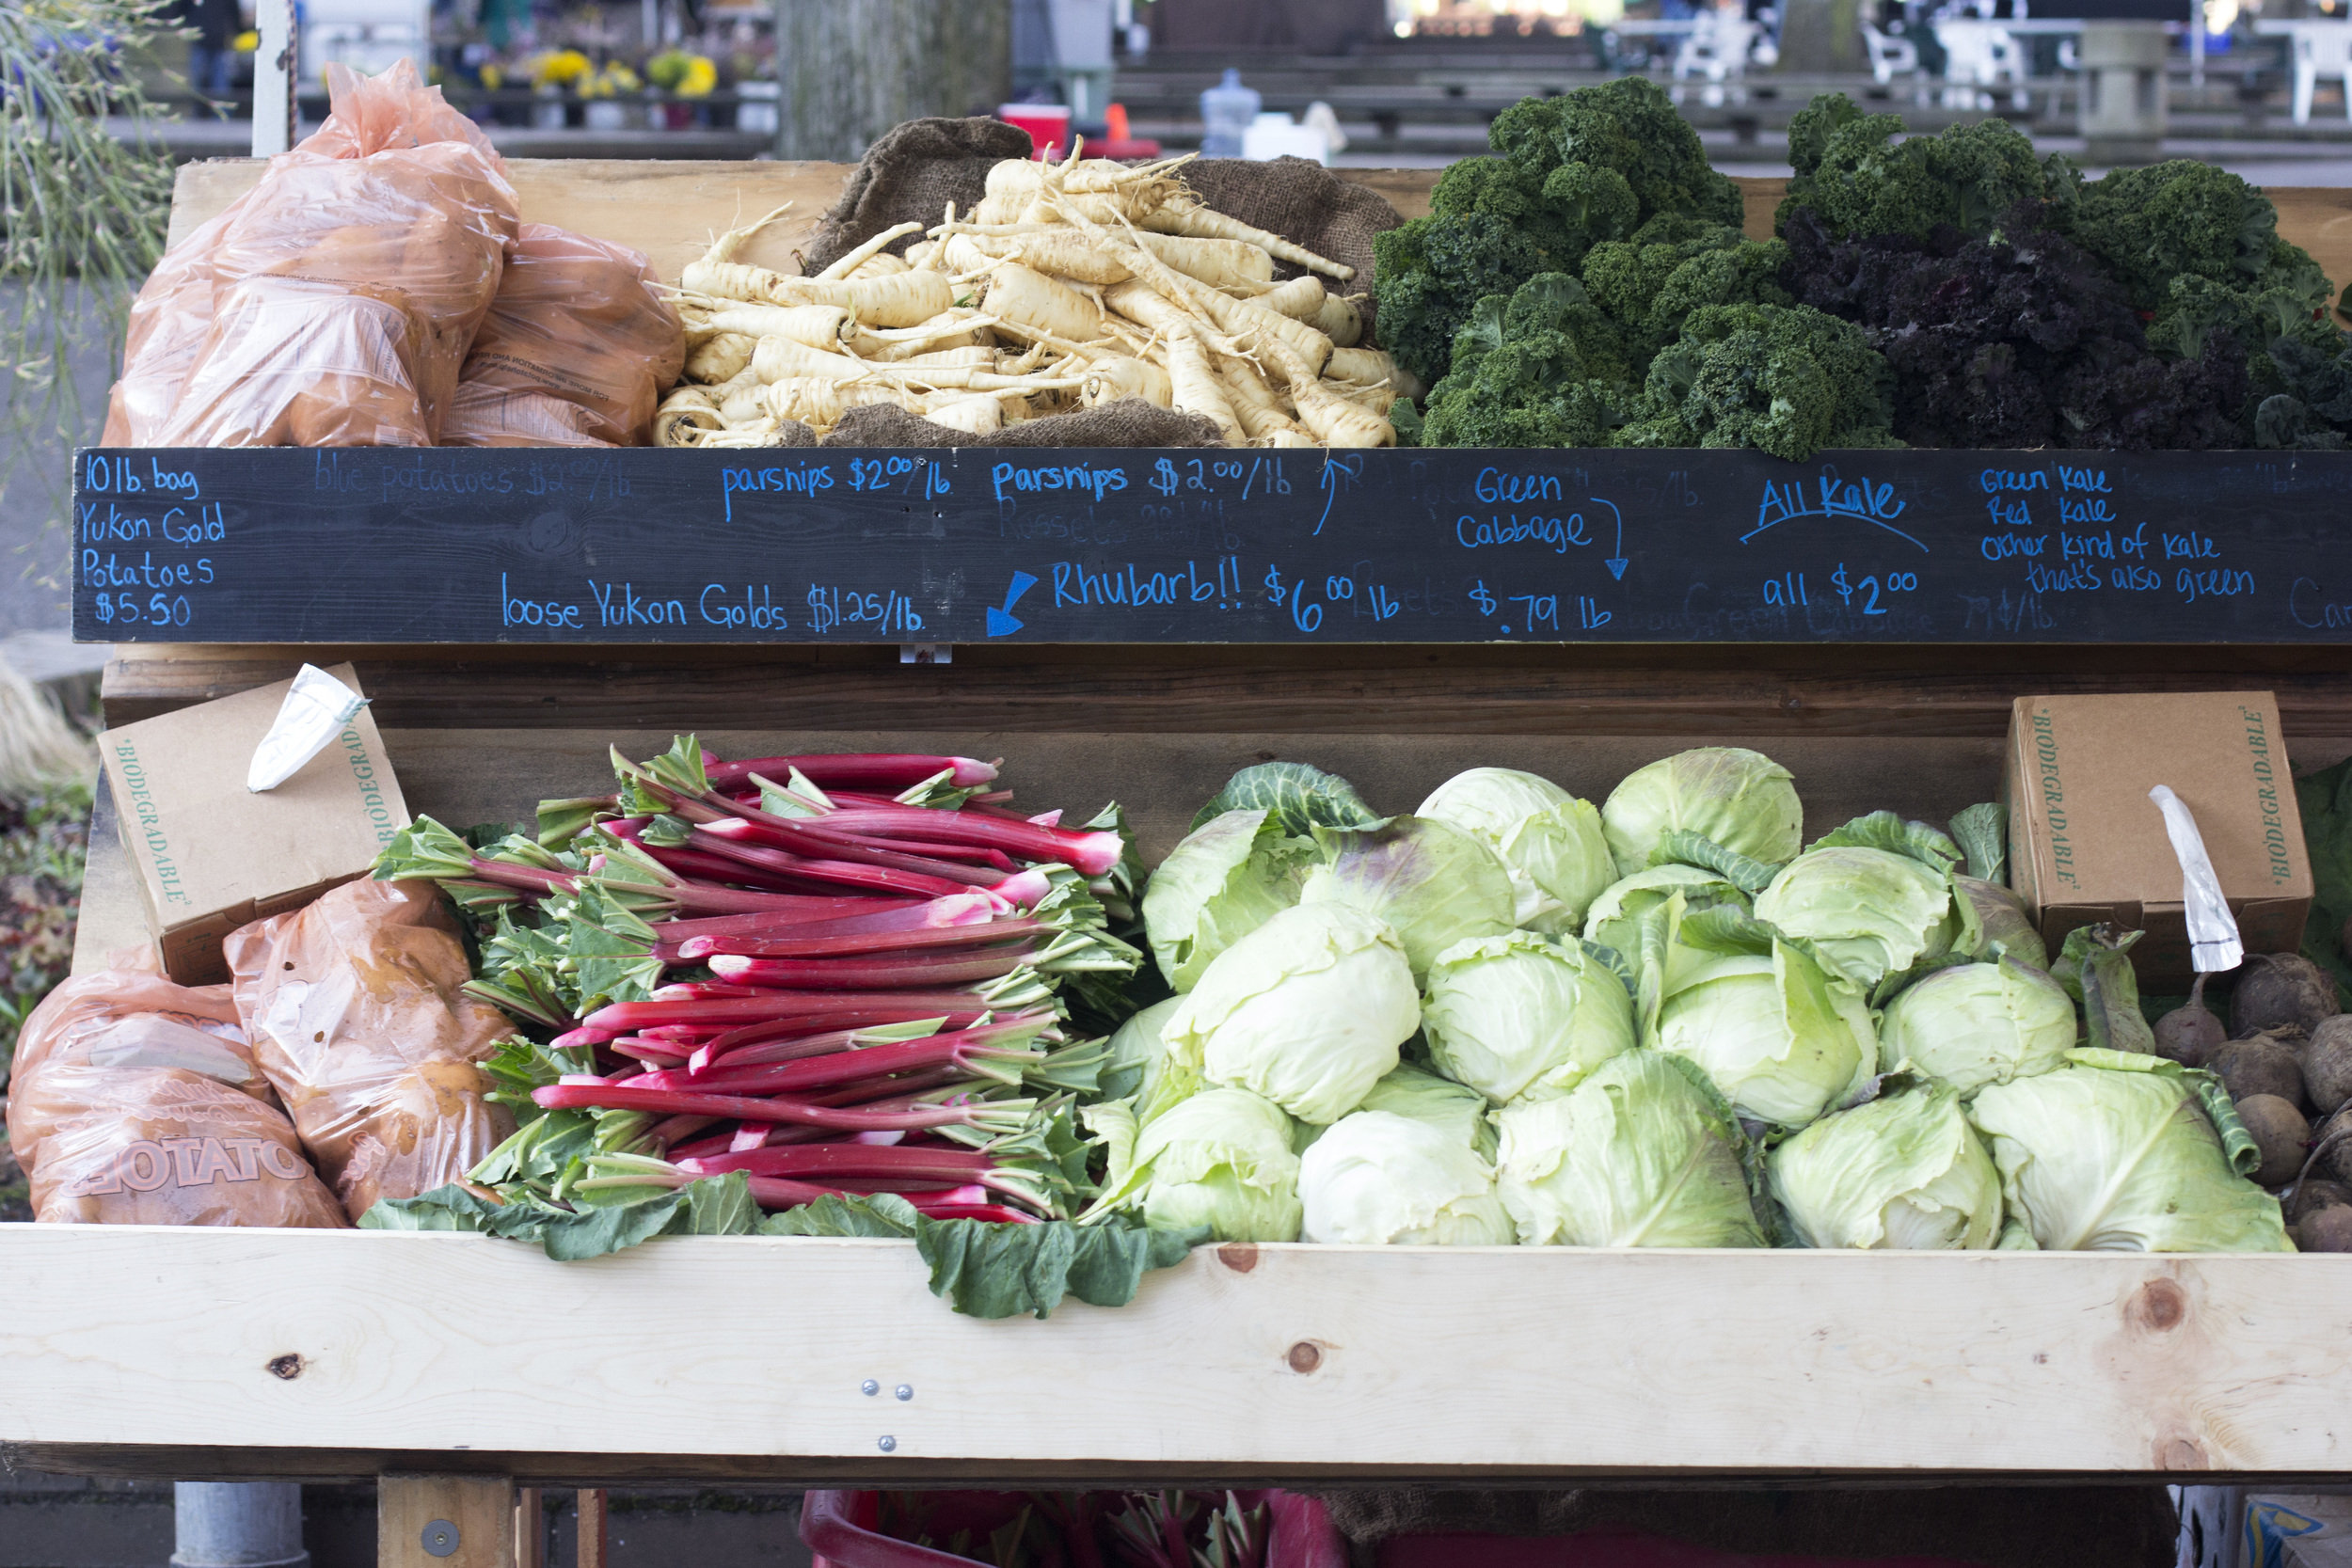 """This was the earliest rhubarb from a few weeks ago; it was down to $3/lb last Saturday. I like their """"other kind of kale that's also green"""" designation on the far right."""